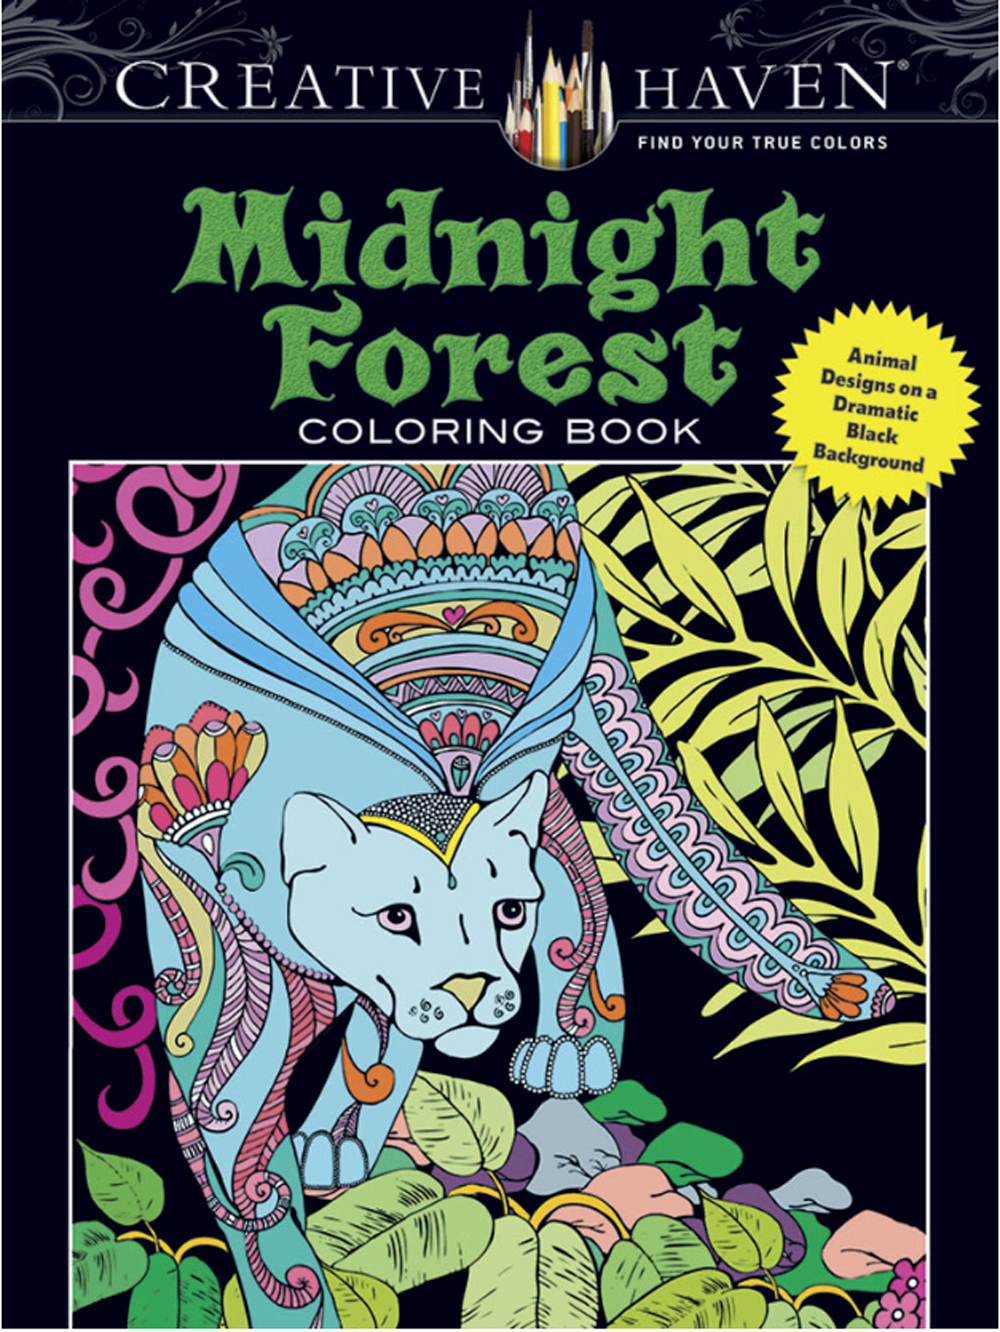 Creative Haven Coloring Book Midnight Forest